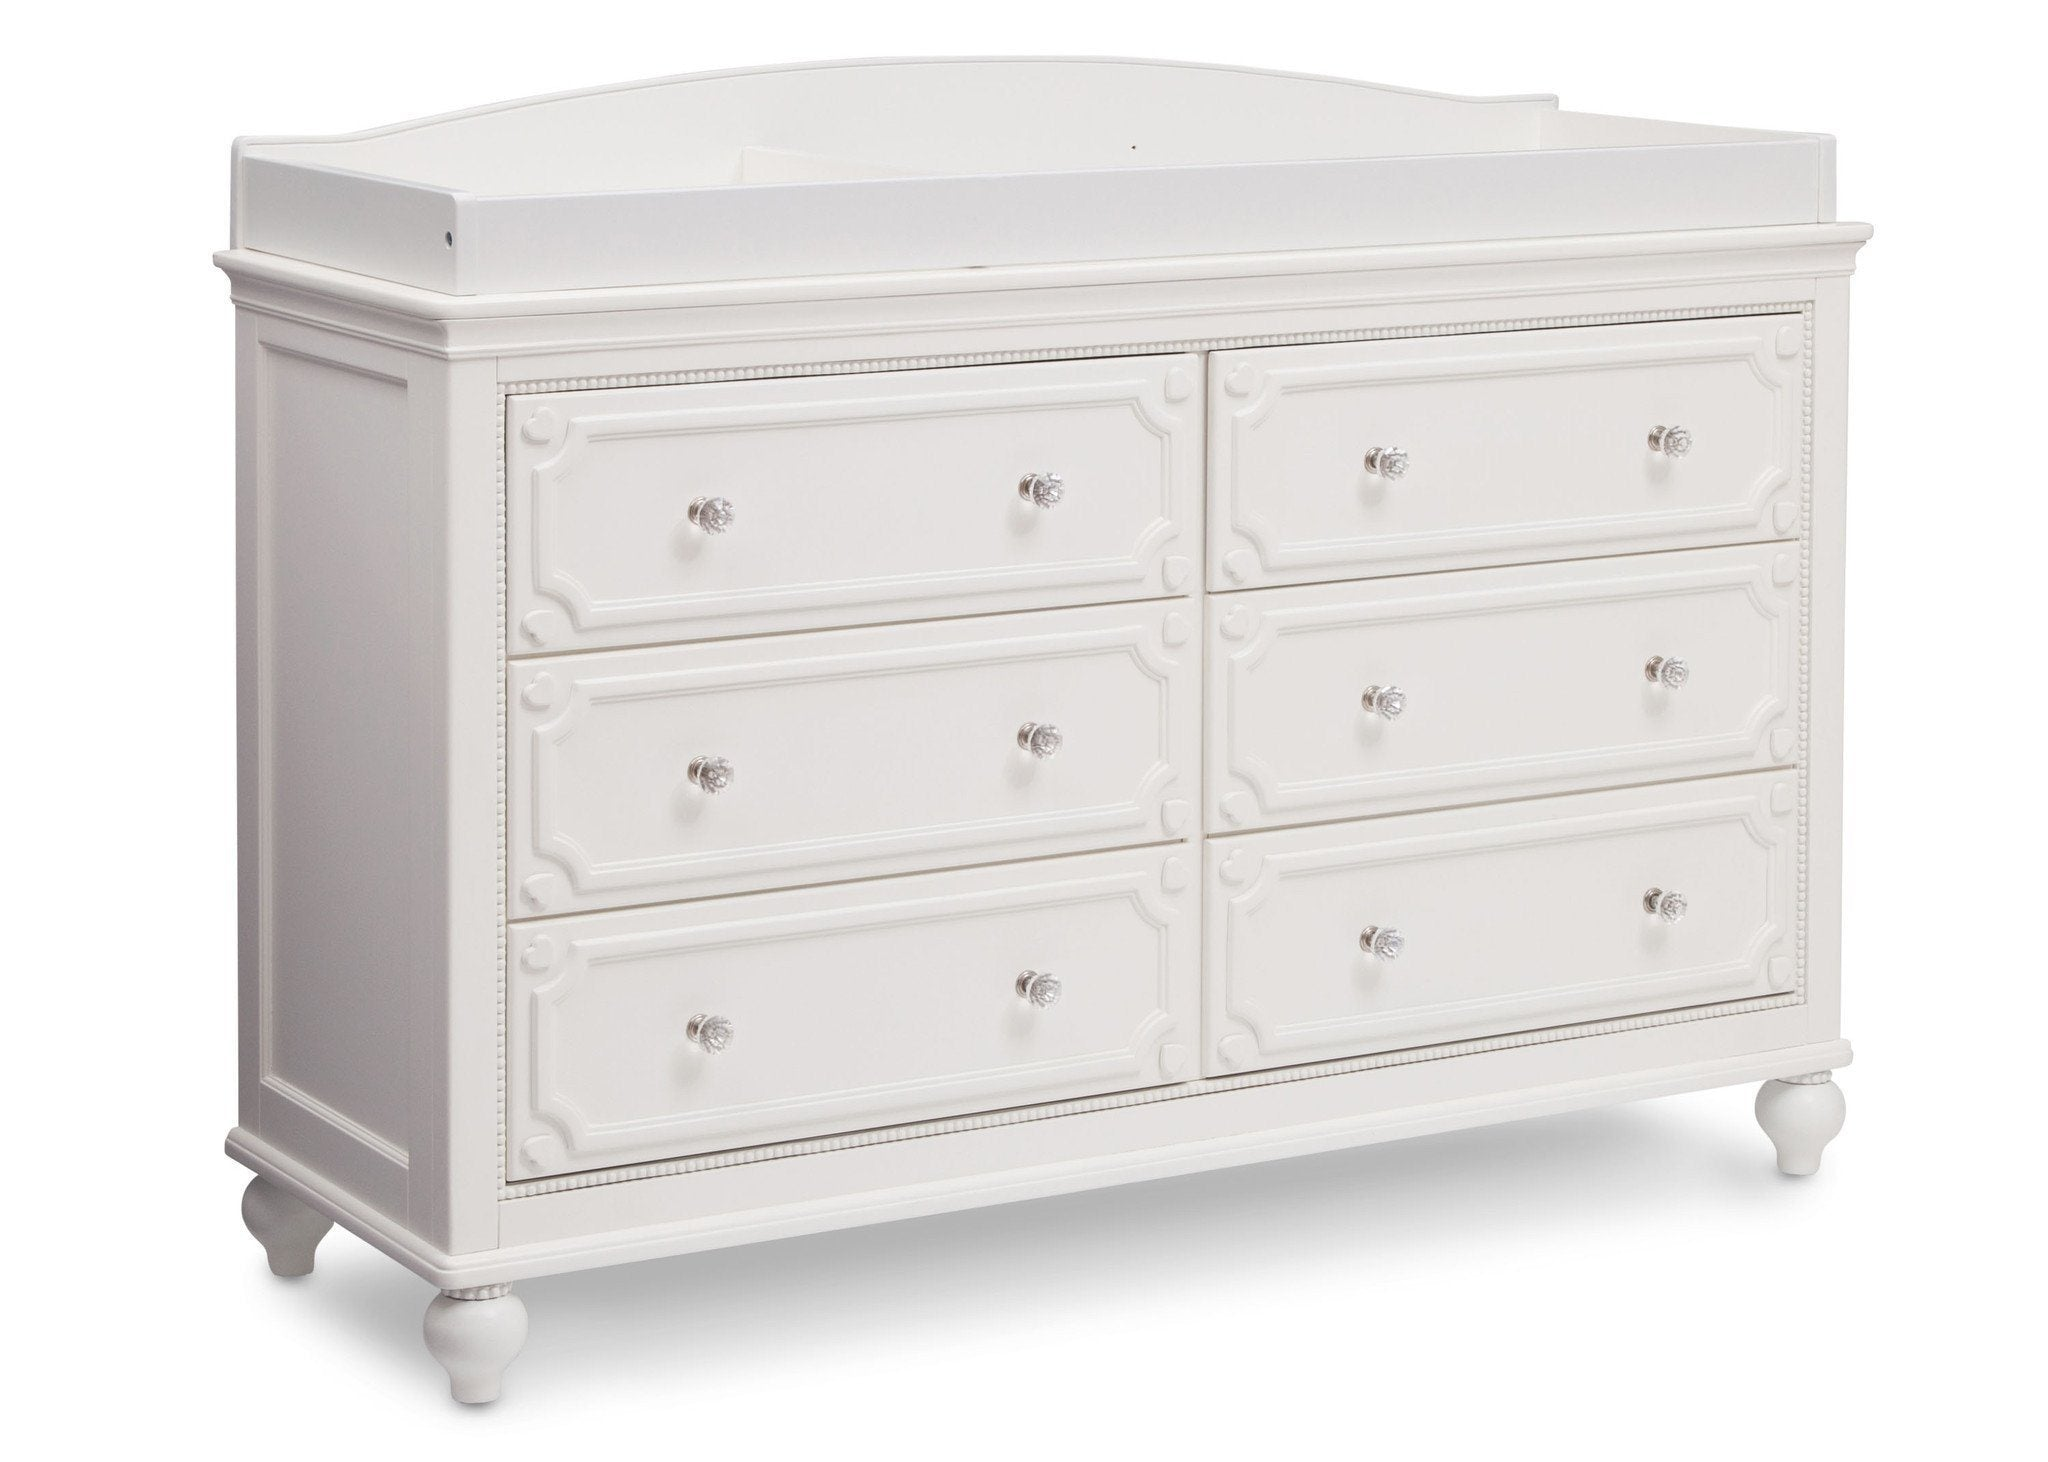 Delta Children White Ambiance (108) Princess Magical Dreams Dresser Side View with Changing Top